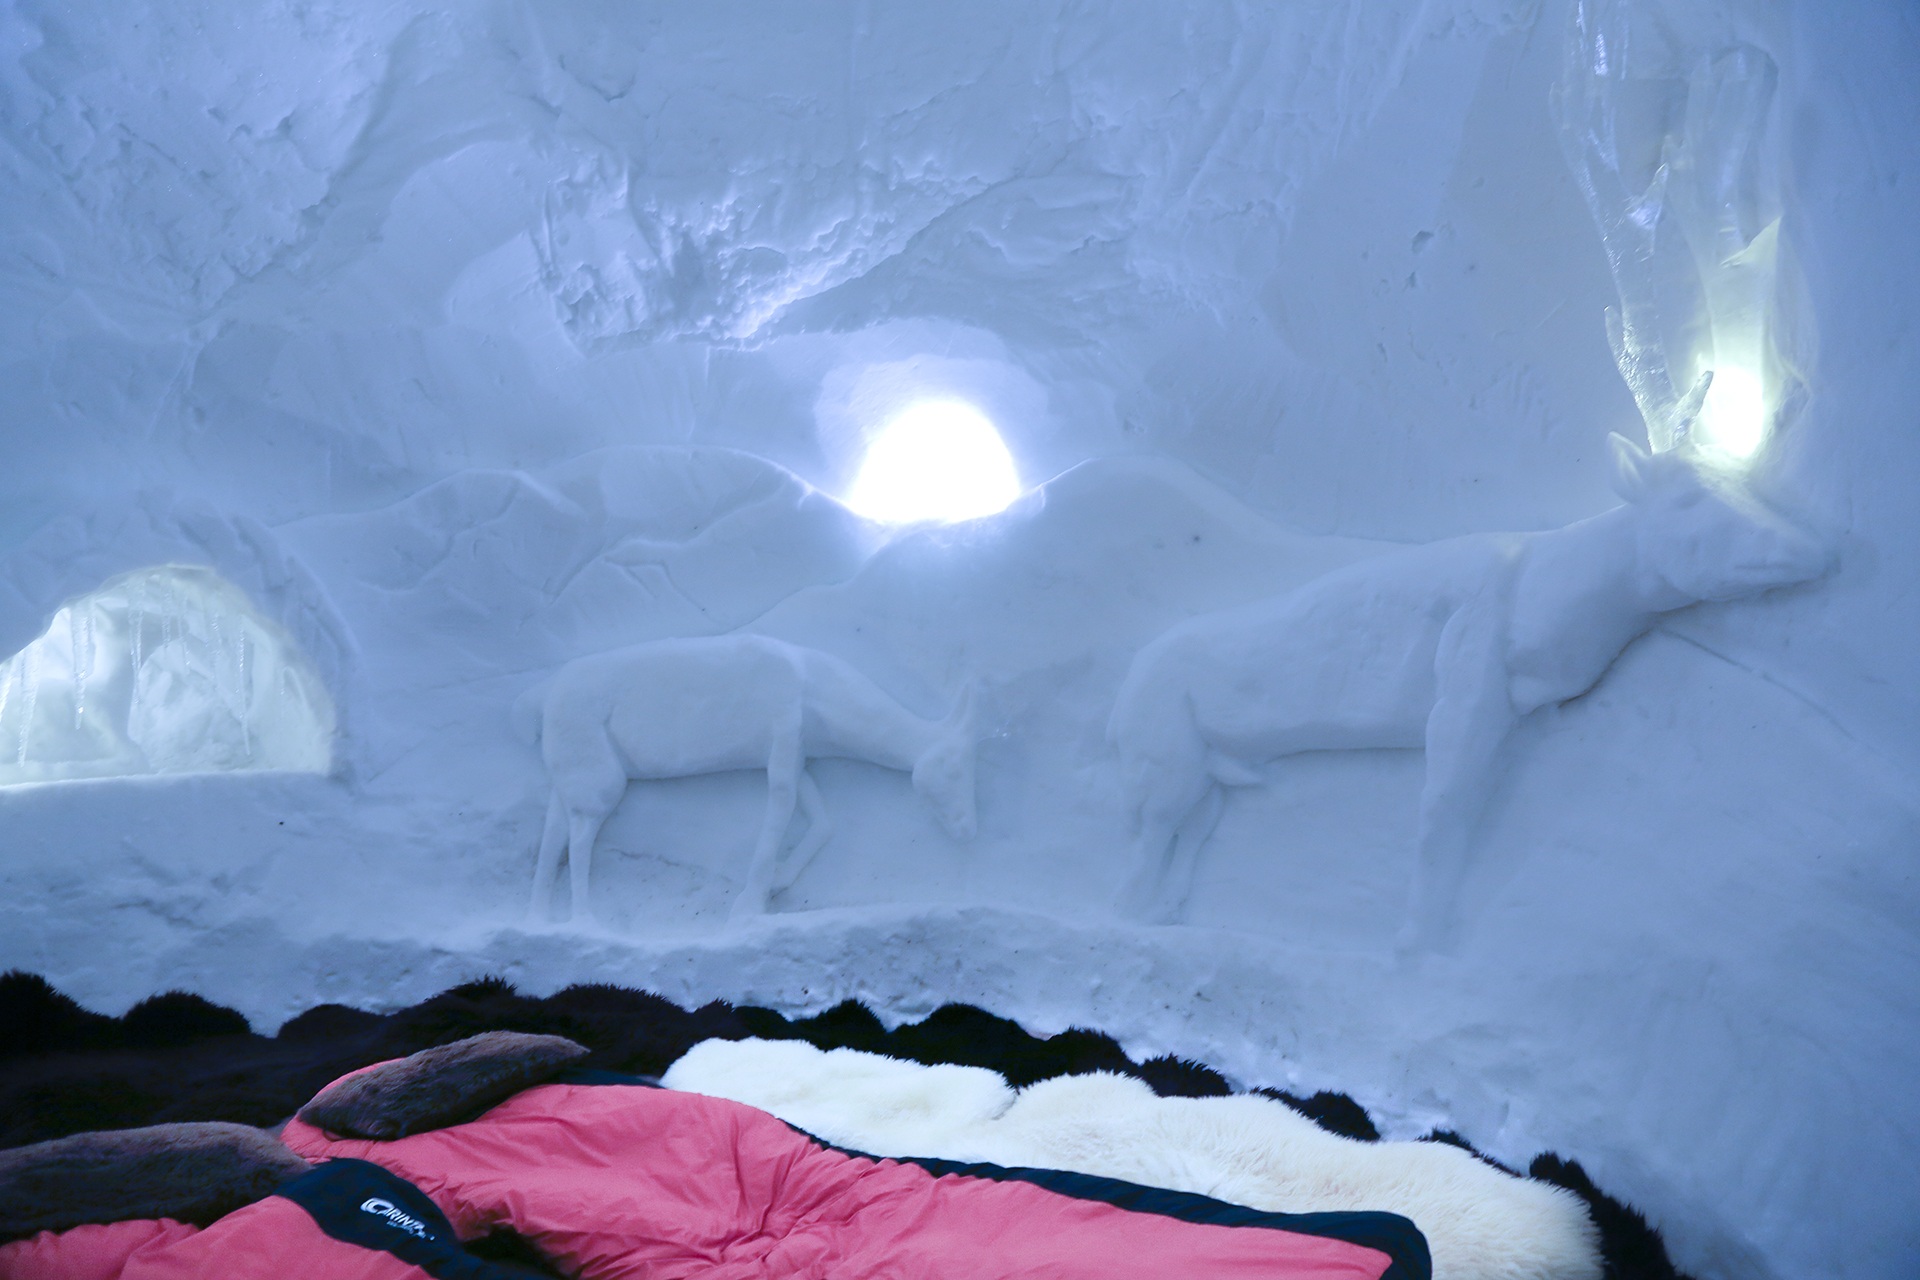 Pure Snow Top 10 Most Amazing Places To Stay In The Snow - Igloo Hotel 2.jpg